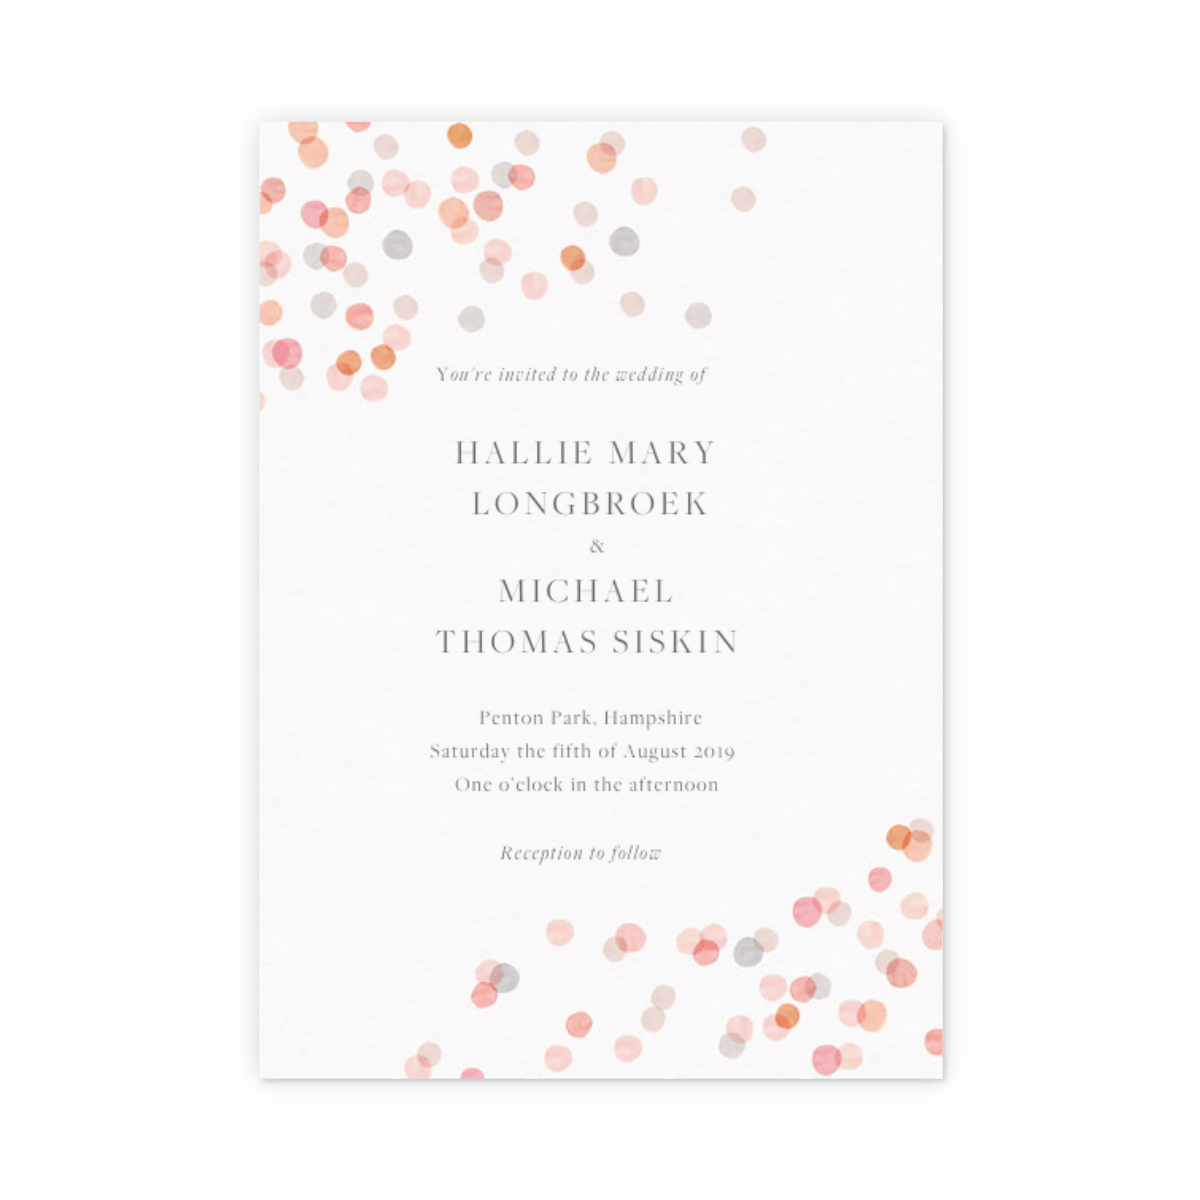 Https%3a%2f%2fwww.papier.com%2fproduct image%2f4589%2f4%2fblush confetti 1197 front 1538491853.png?ixlib=rb 1.1